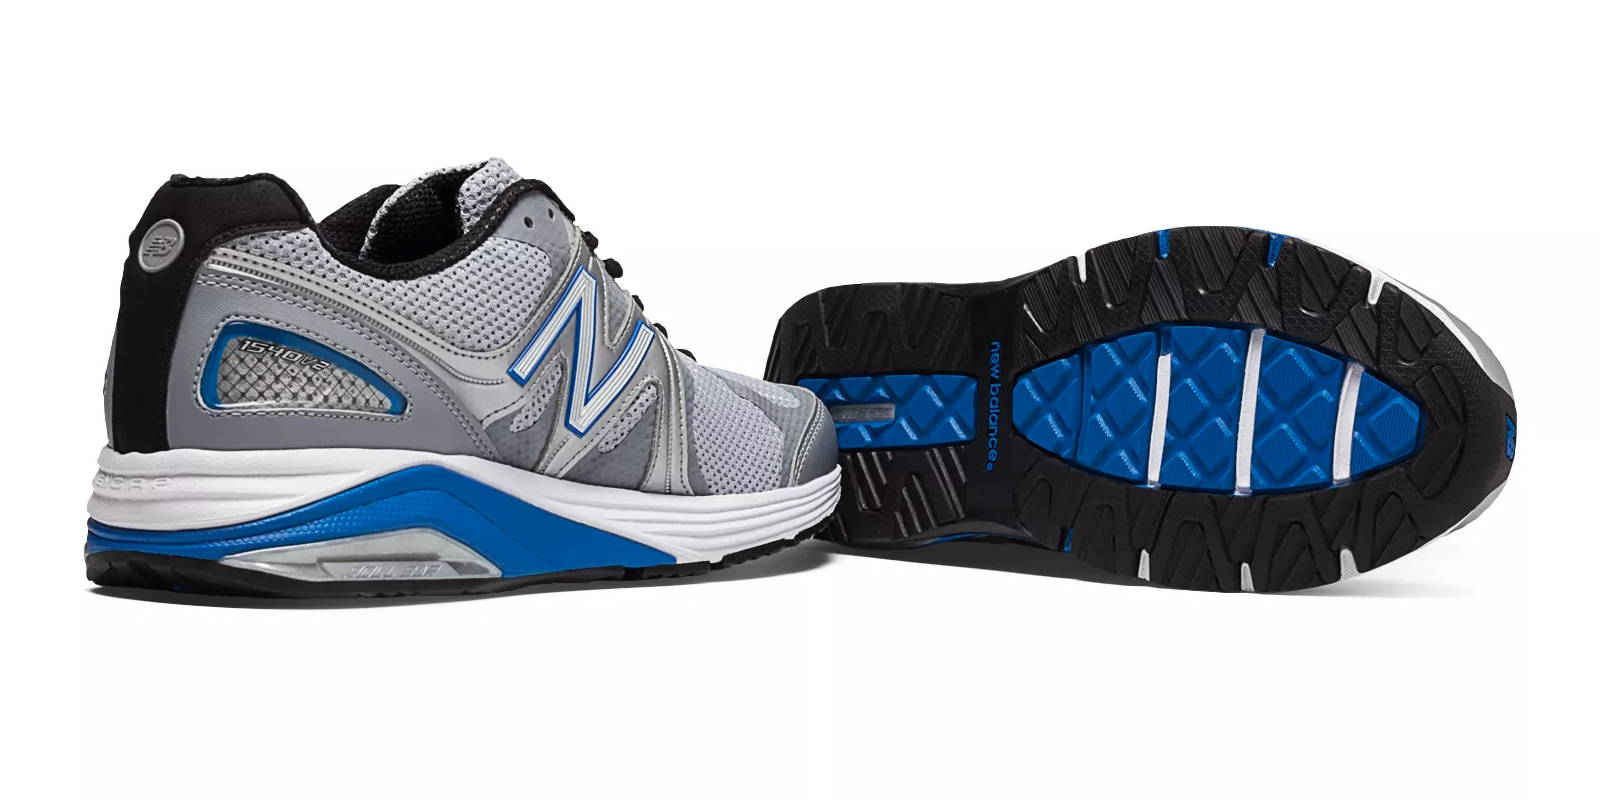 New Balance Men's 1540v2 Stability Running Shoe